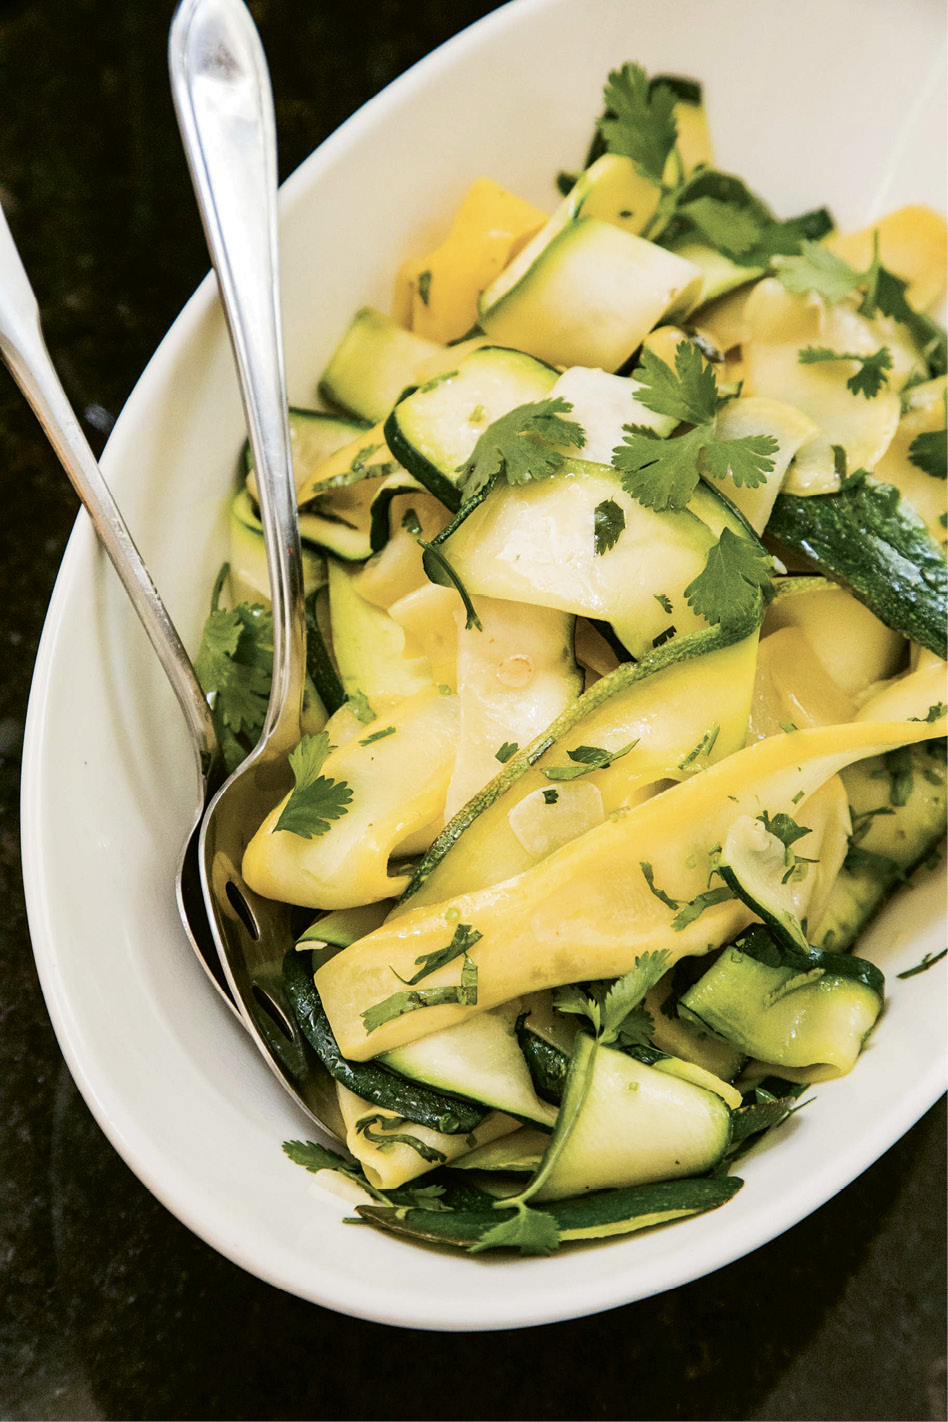 Leftover summer squash tastes great served chilled the next day.